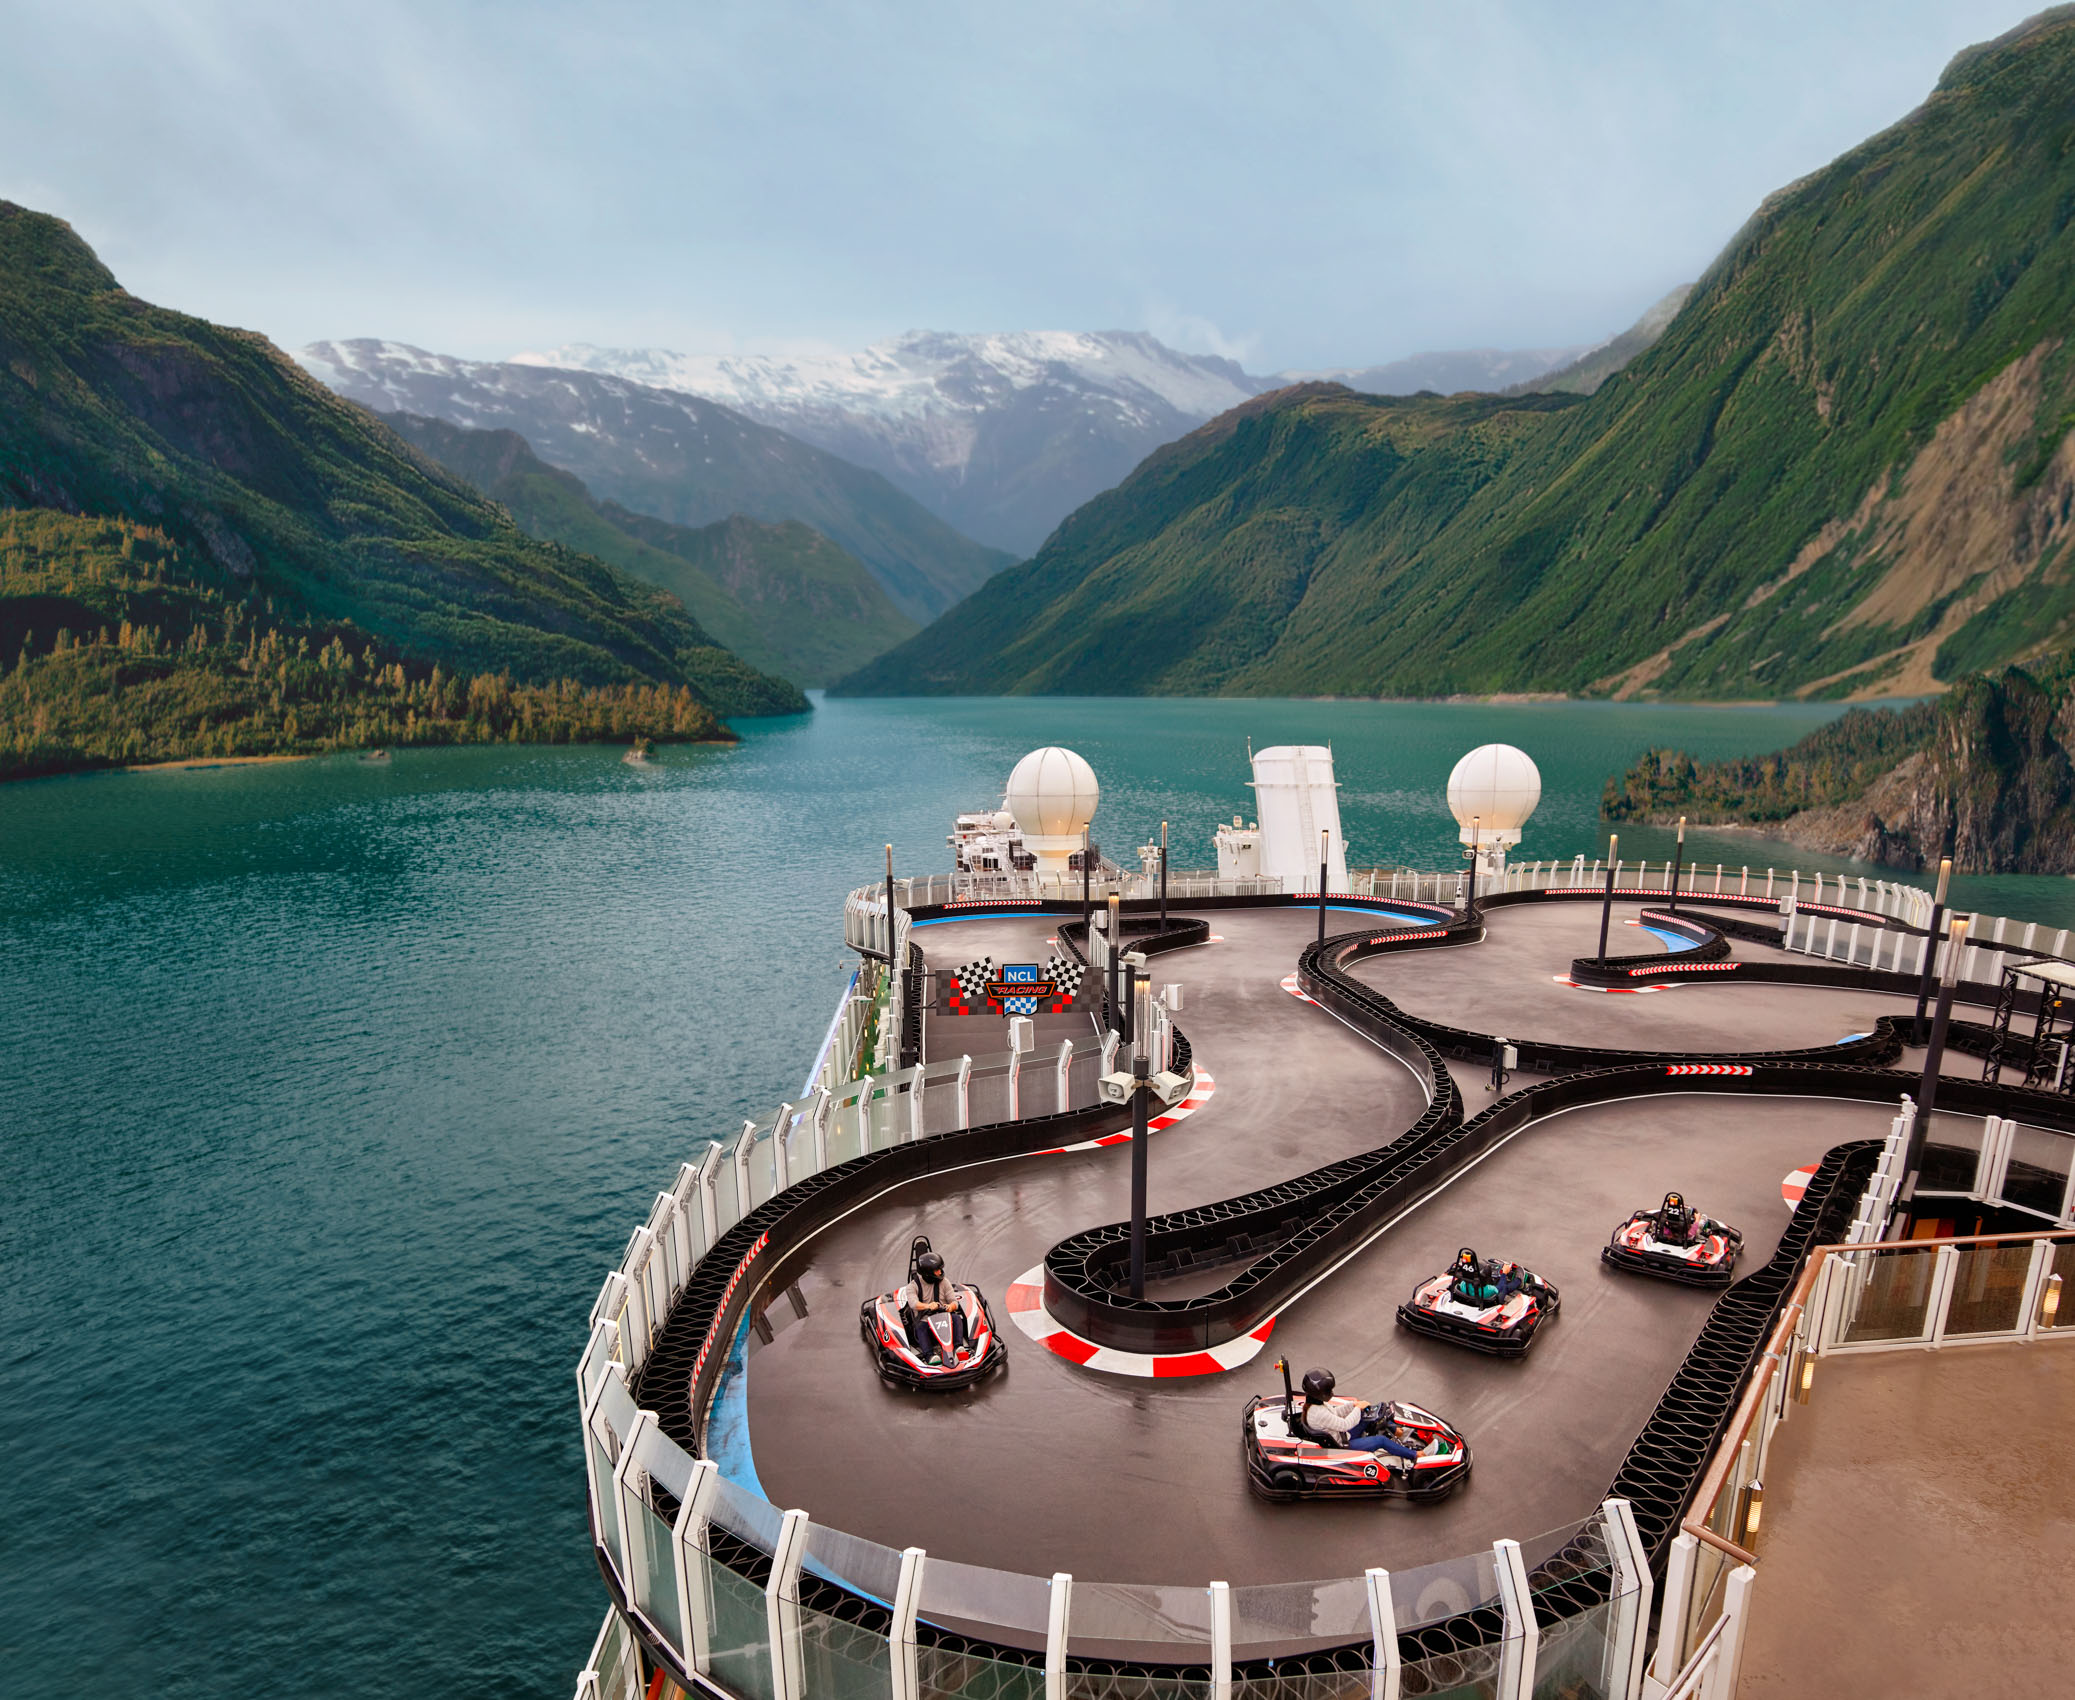 Kevin Steele - a go kart racetrack on the upper deck of a cruise ship